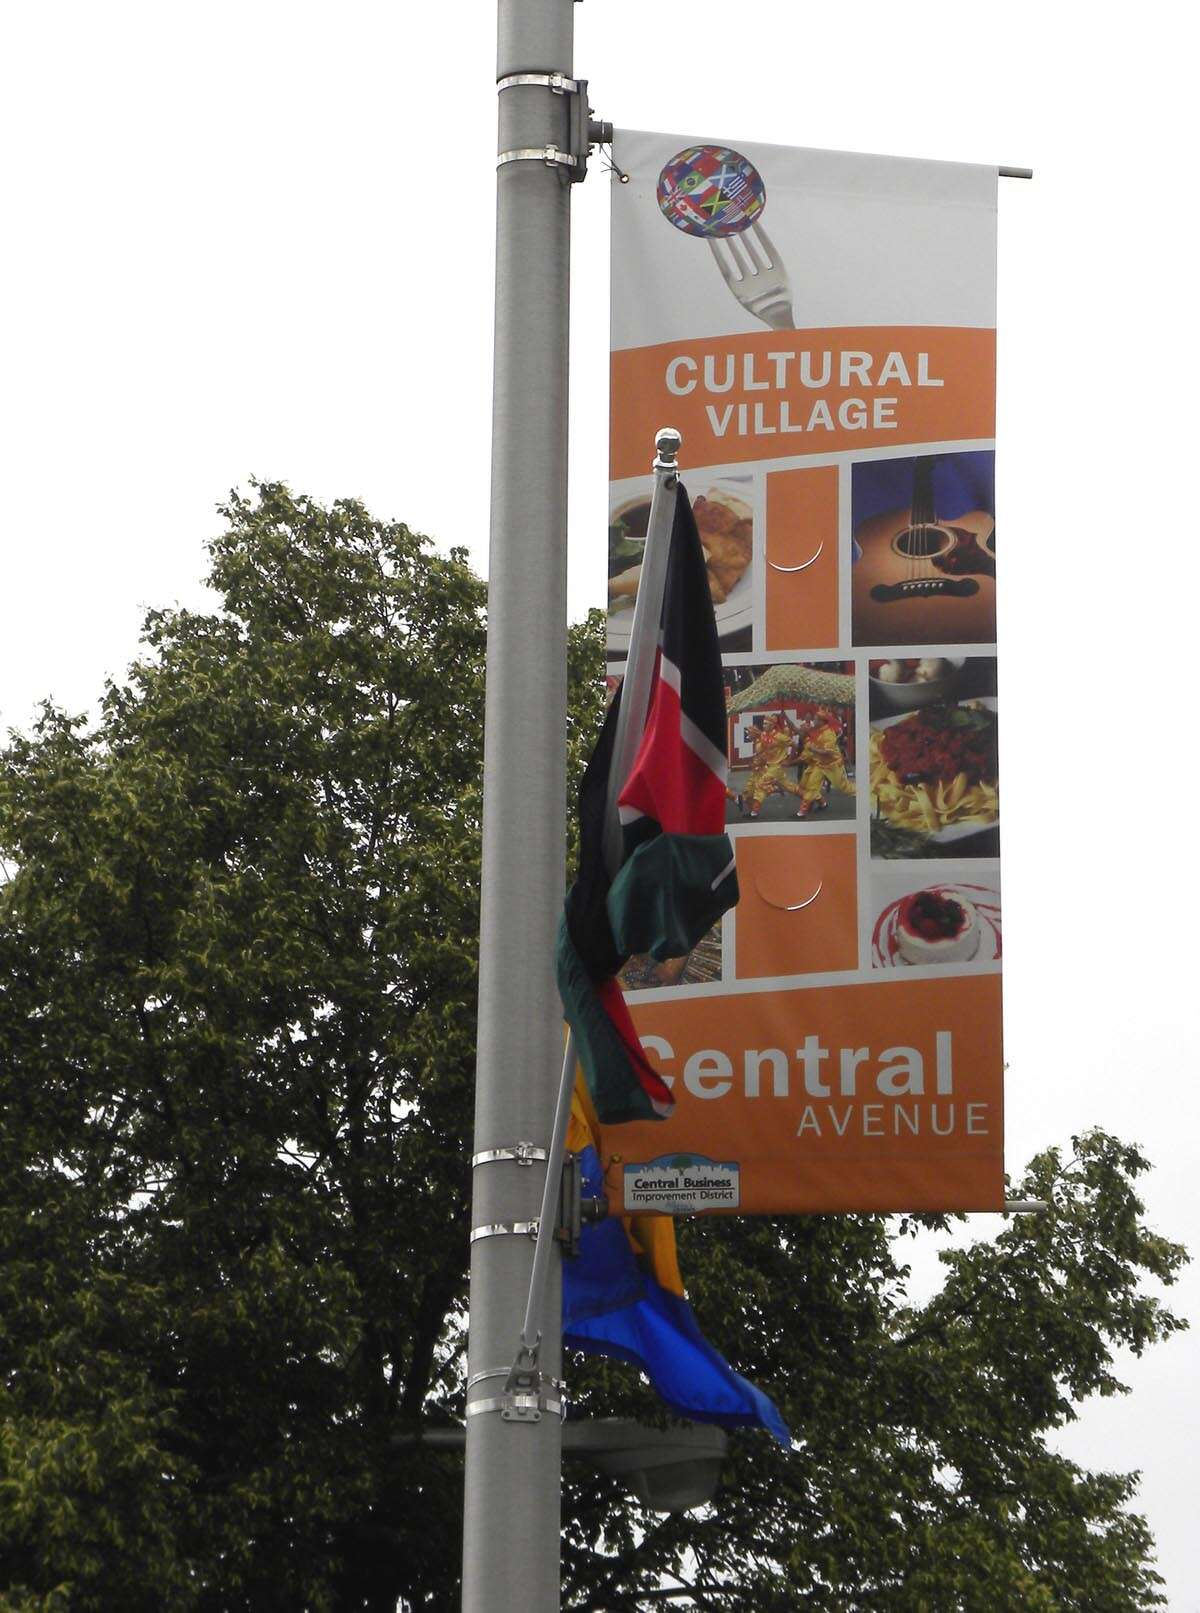 Central Avenue is trying to rebrand itself. (Times Union)